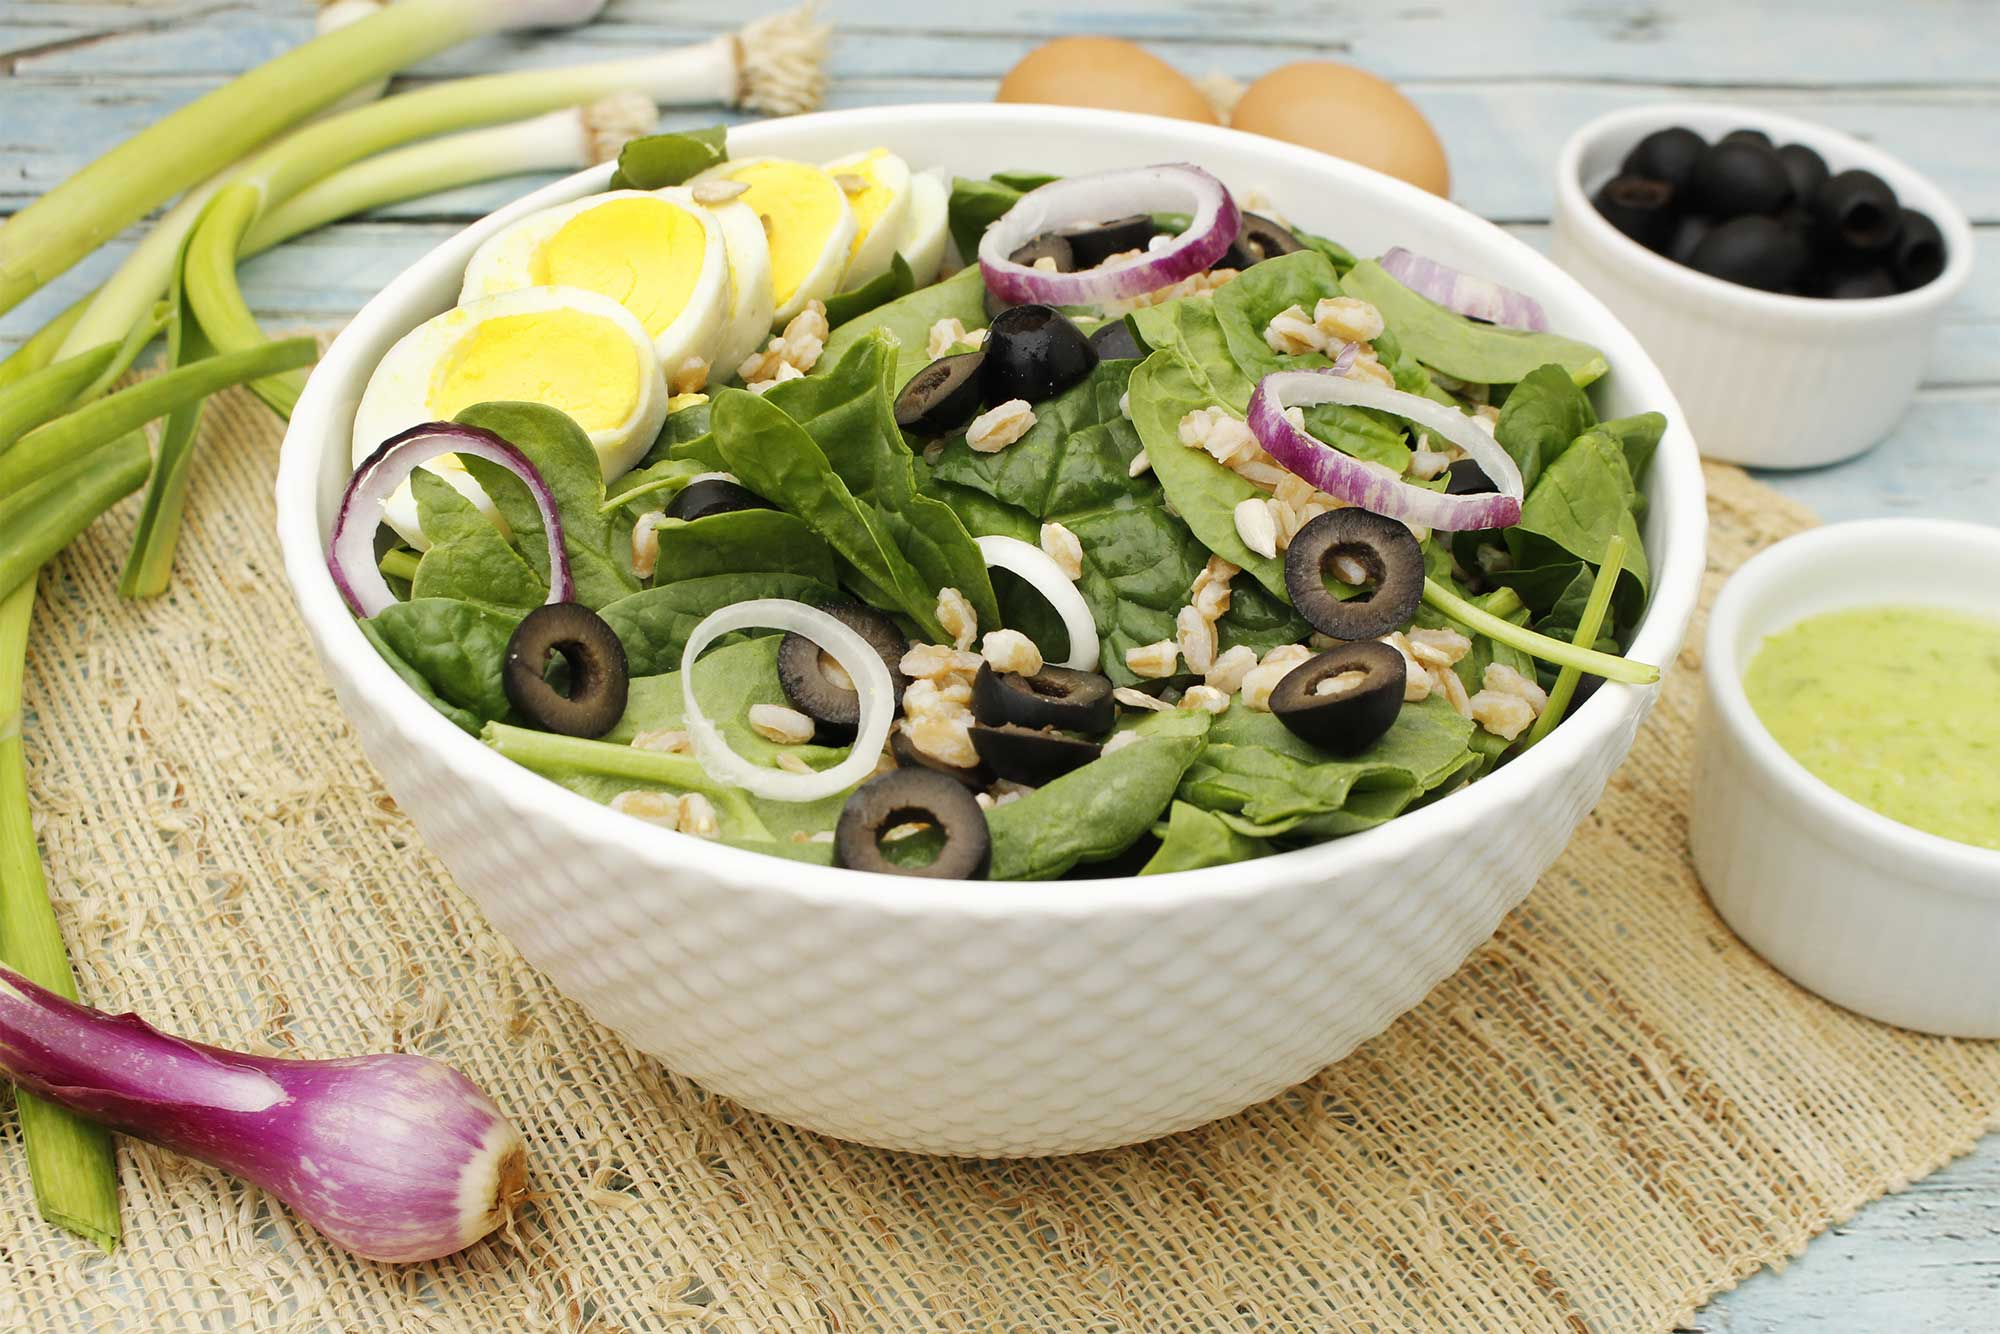 Spring Salad with Green Garlic Dressing